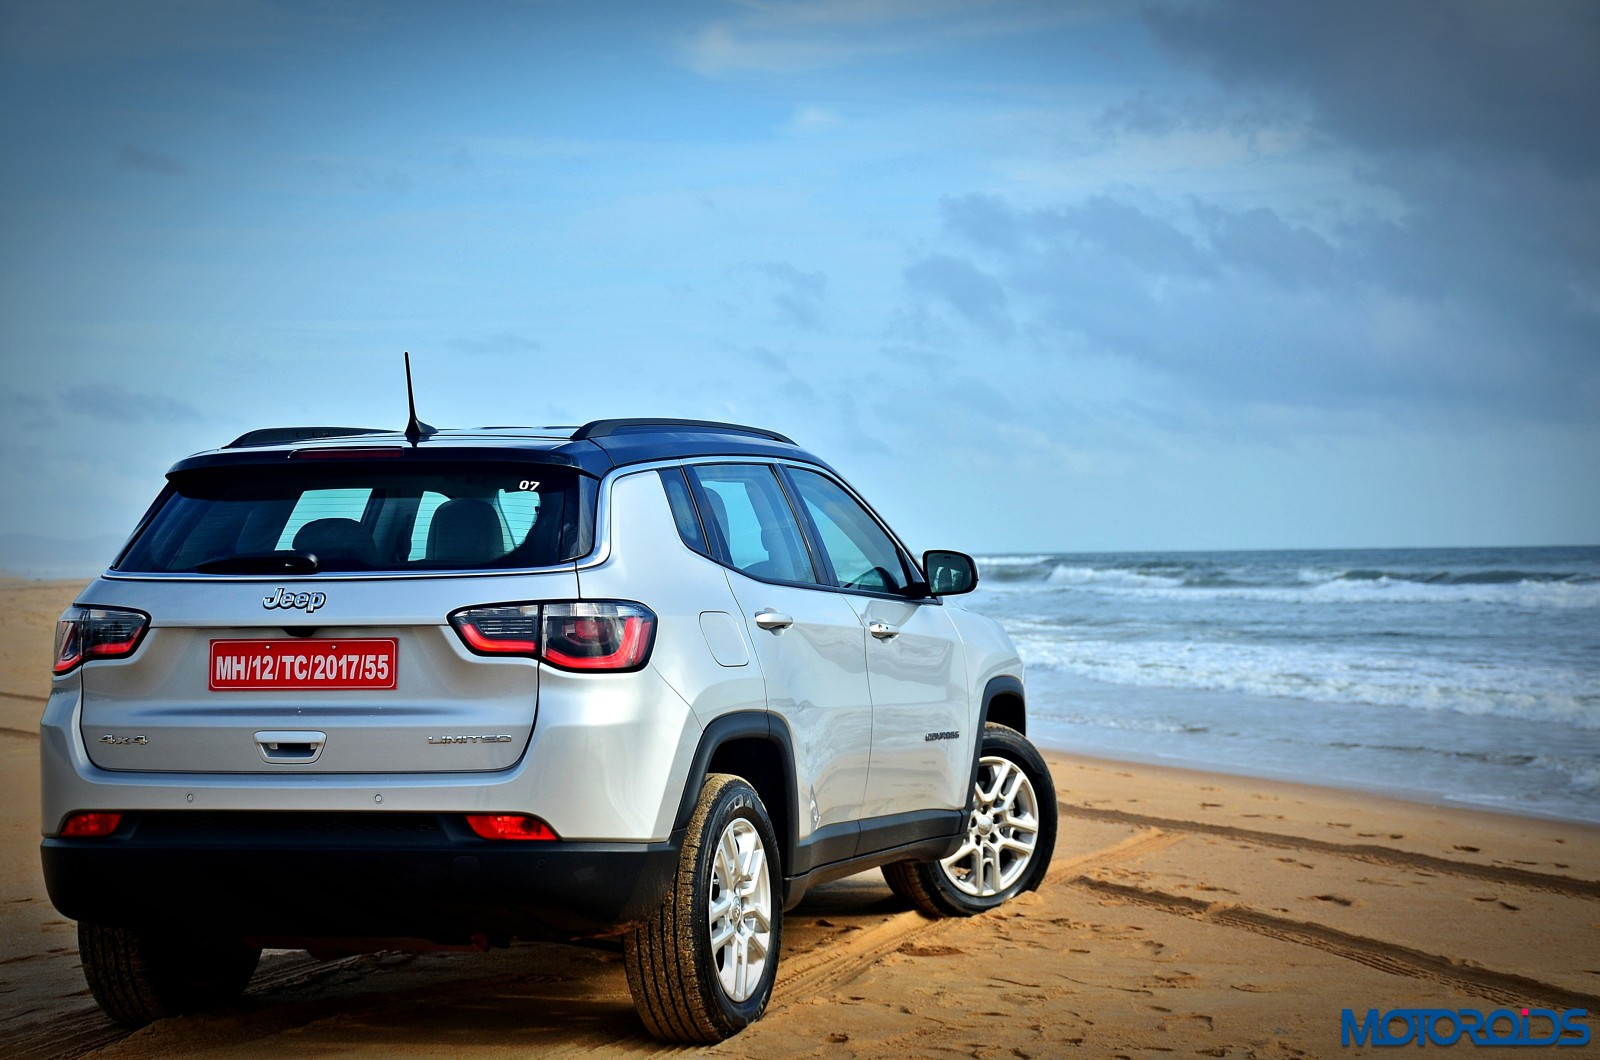 Made in India Jeep Compass Review Still Shots on the beach (27)